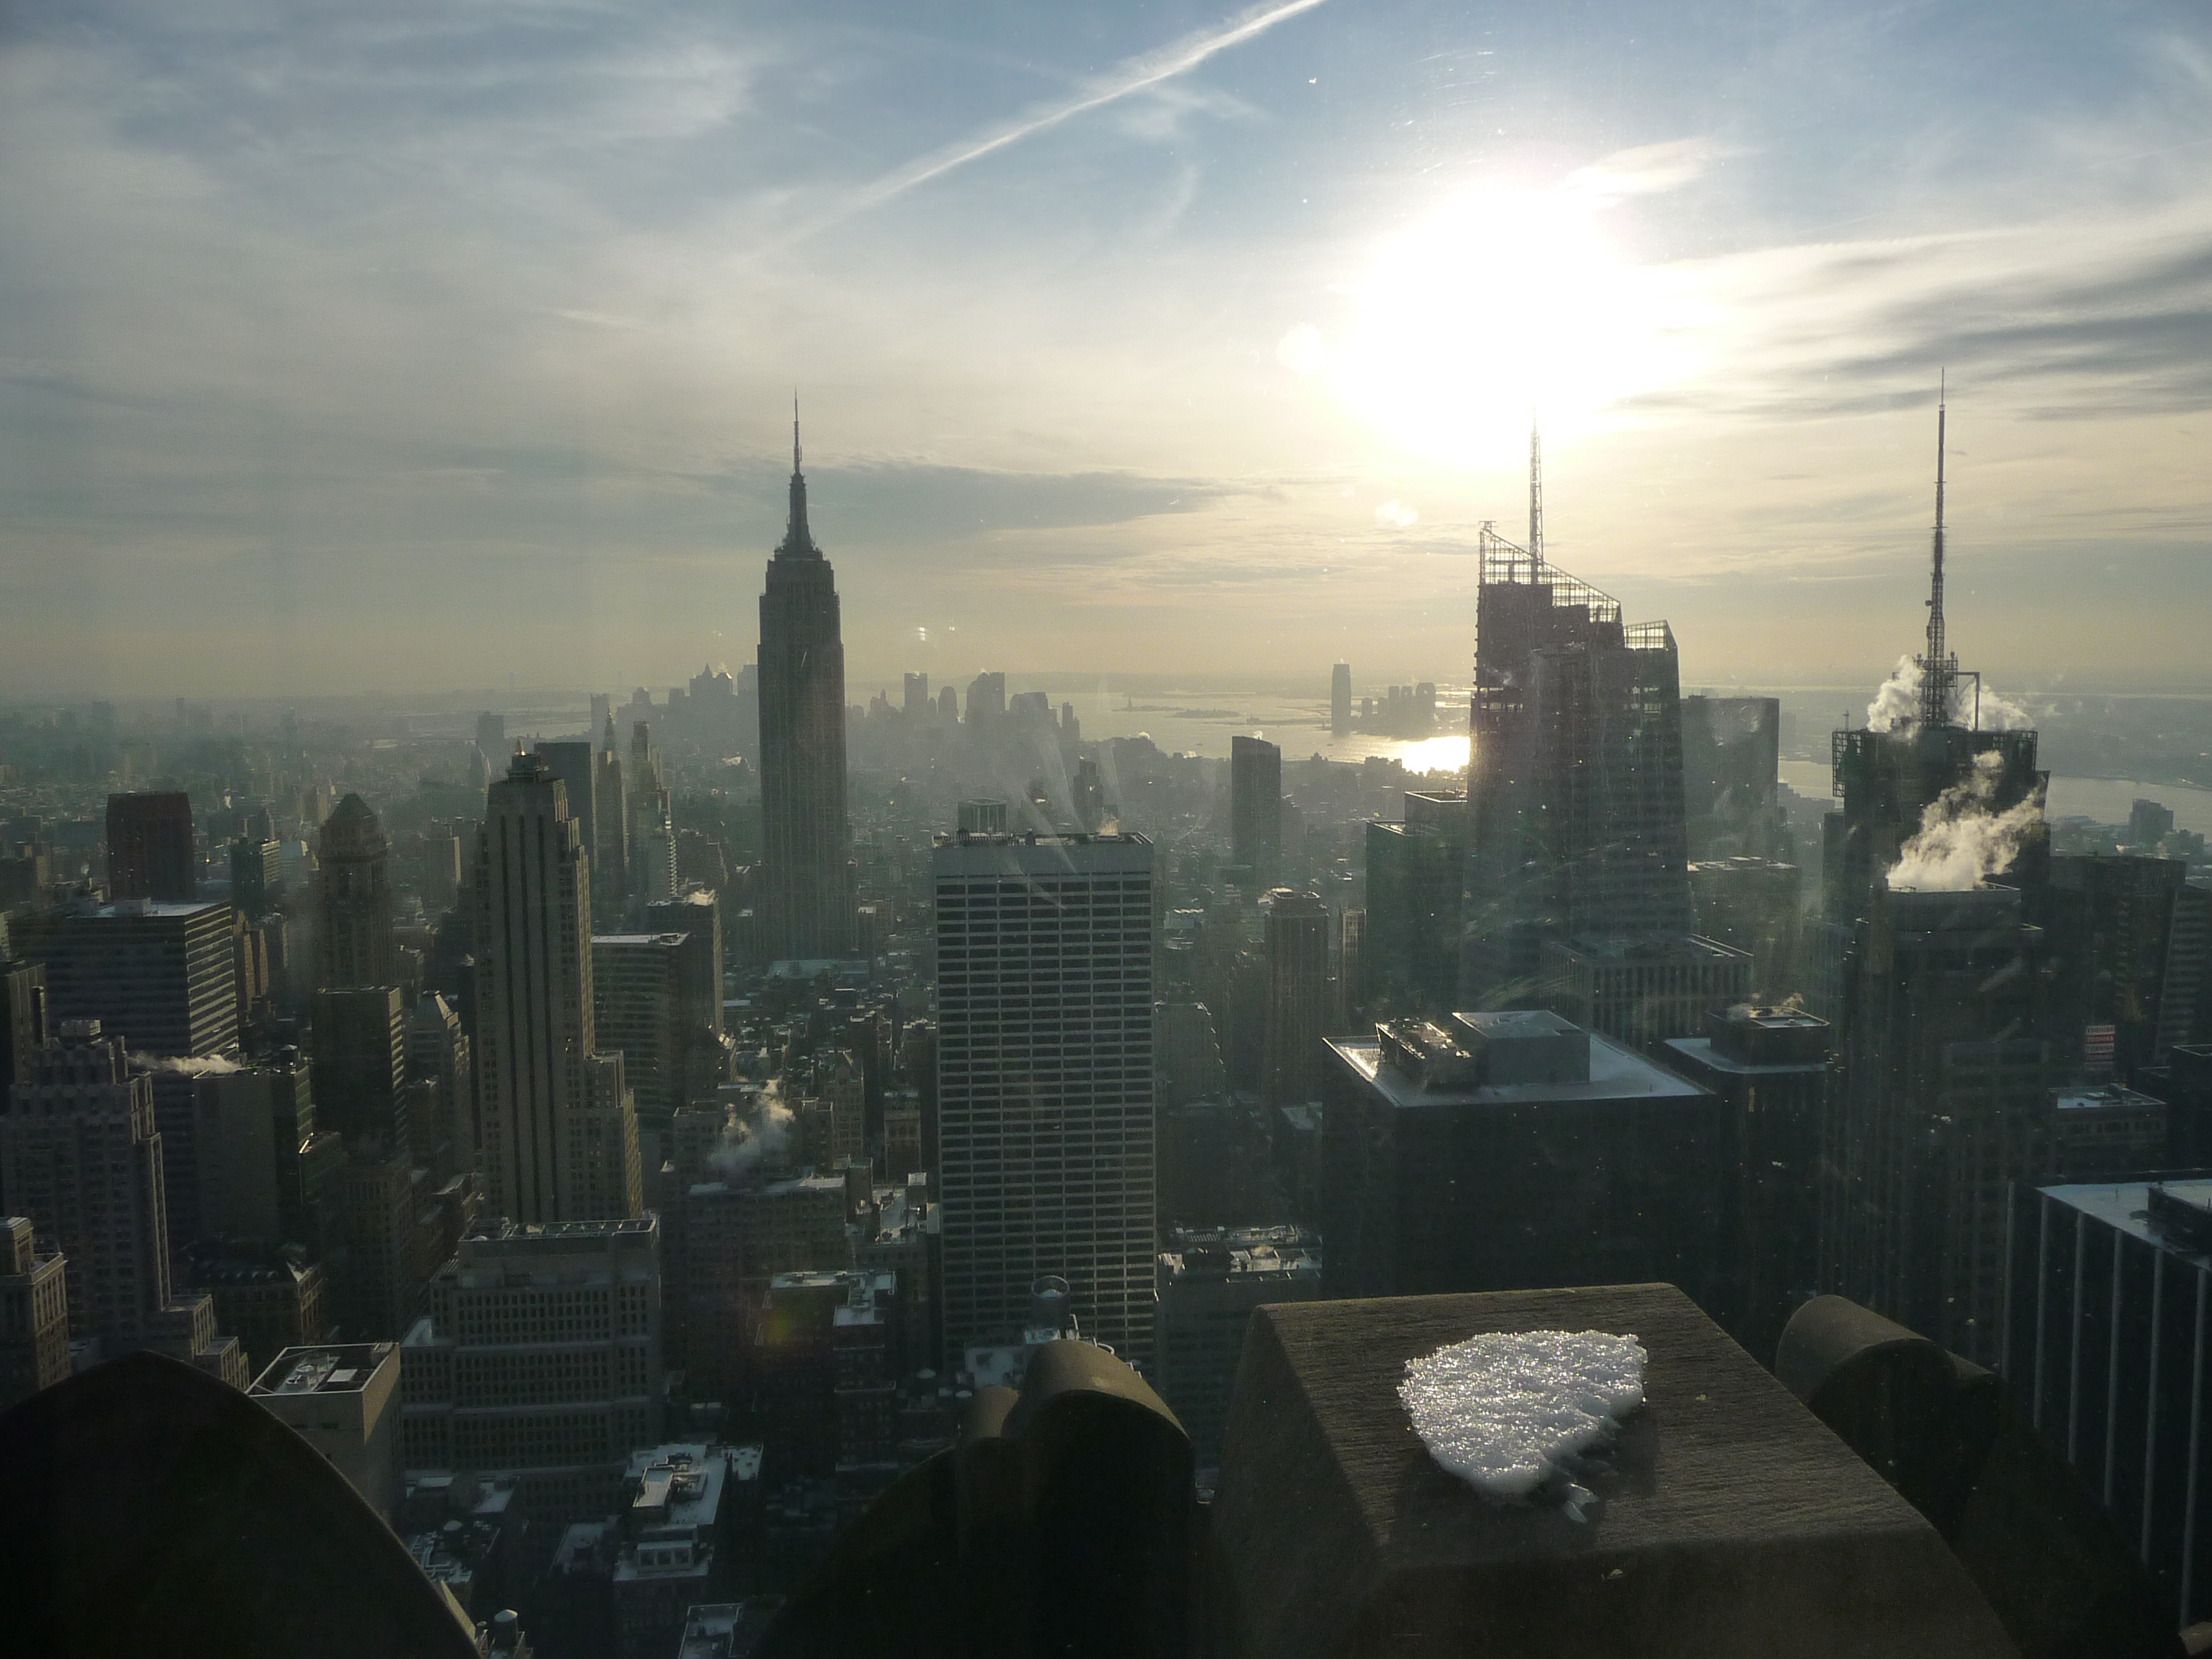 Photo taken from the top of the Rockefeller Centre in New York City, U.S.A